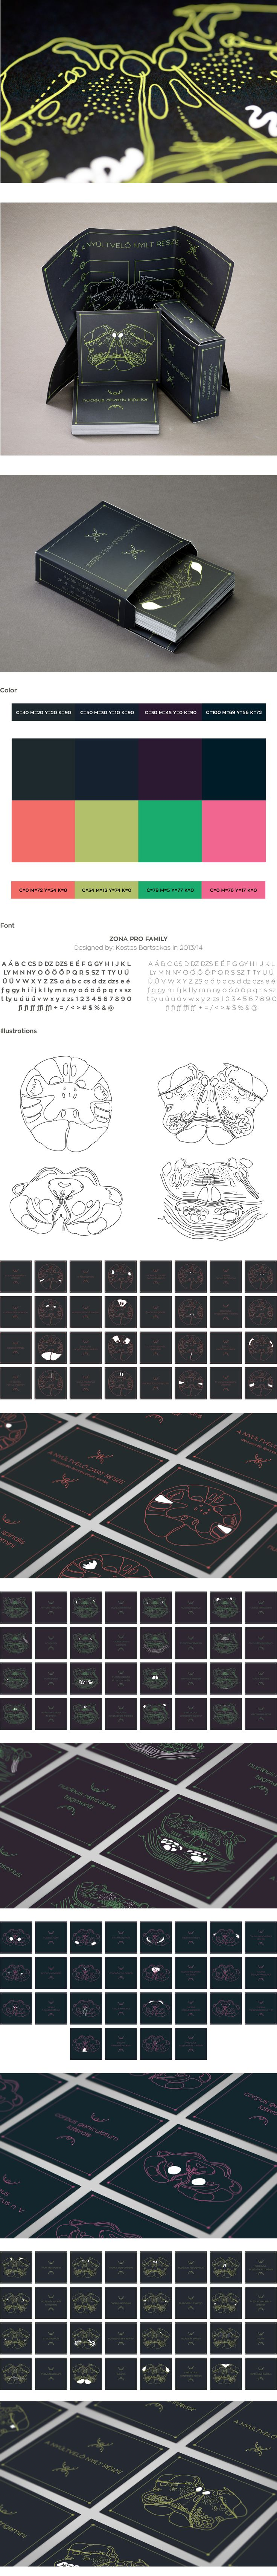 """Check out my @Behance project: """"Memory game: cross-sections of the brain"""" https://www.behance.net/gallery/42615435/Memory-game-cross-sections-of-the-brain"""